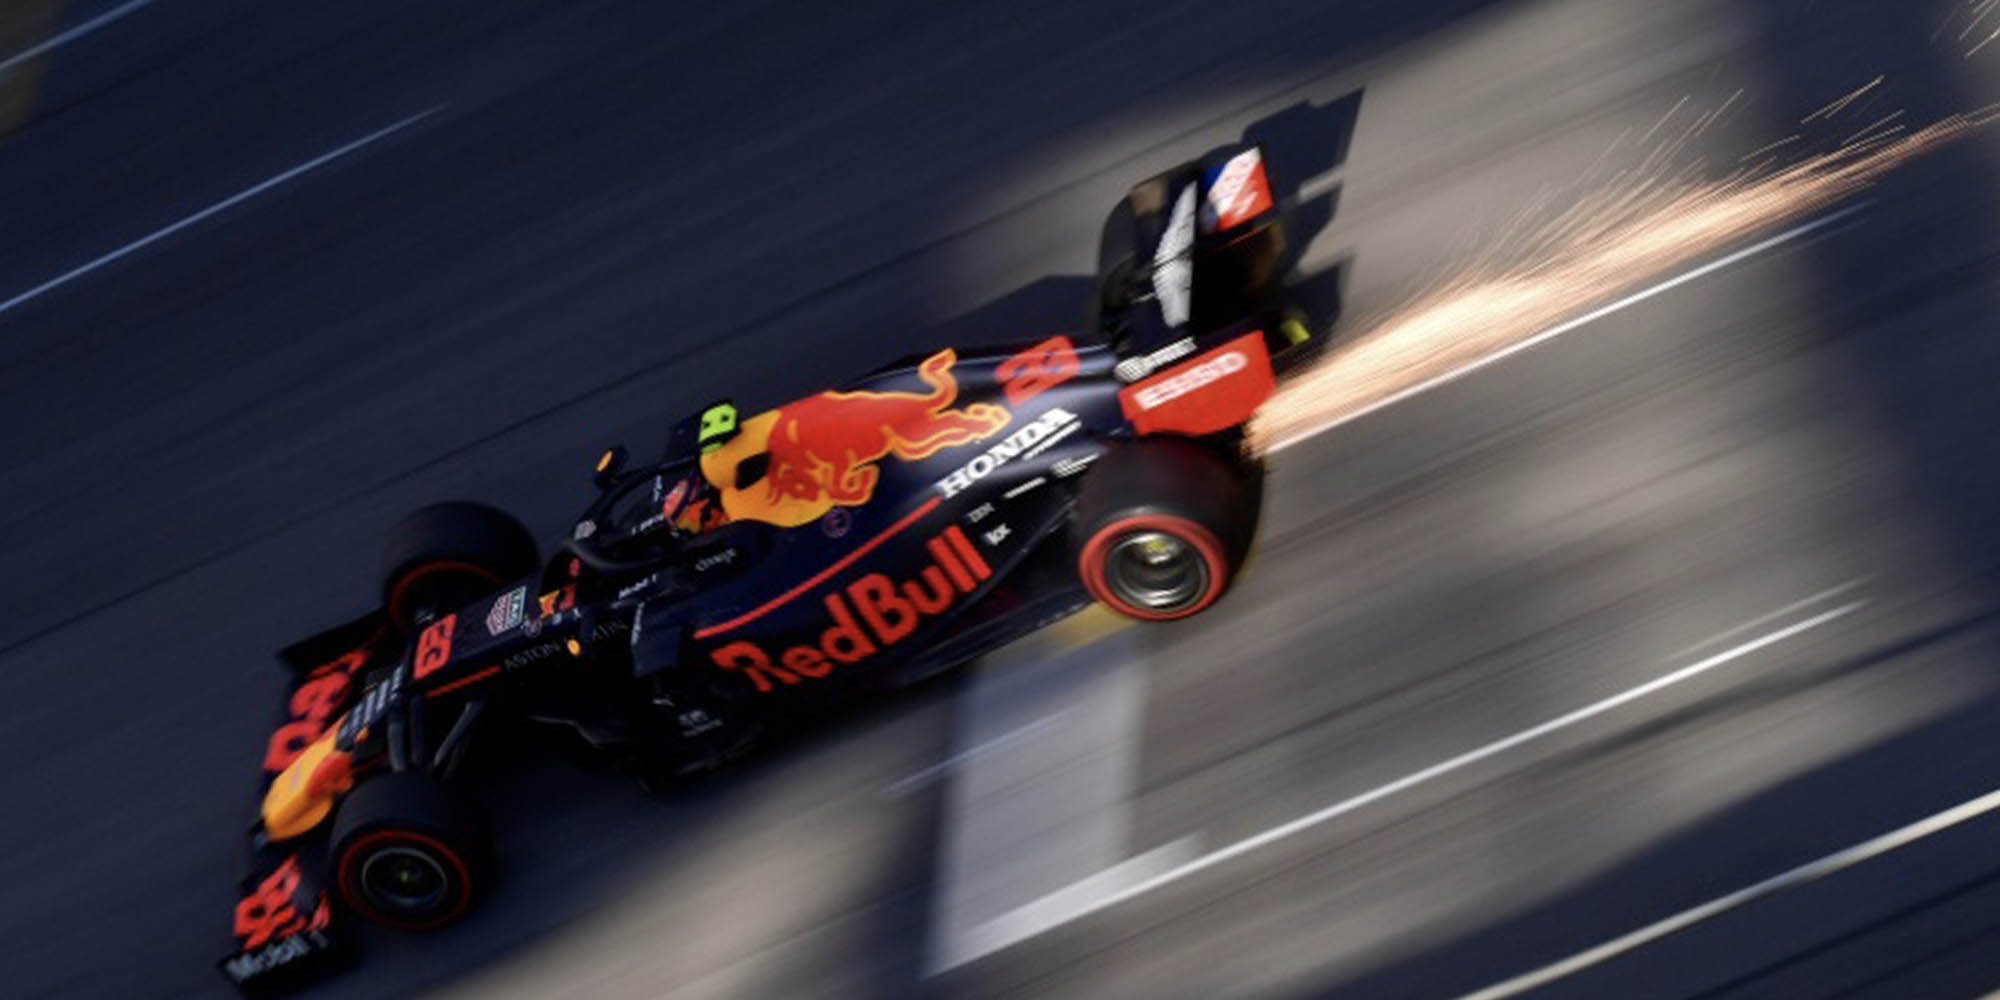 MPH: Why has Honda only extended its F1 contract by a year?